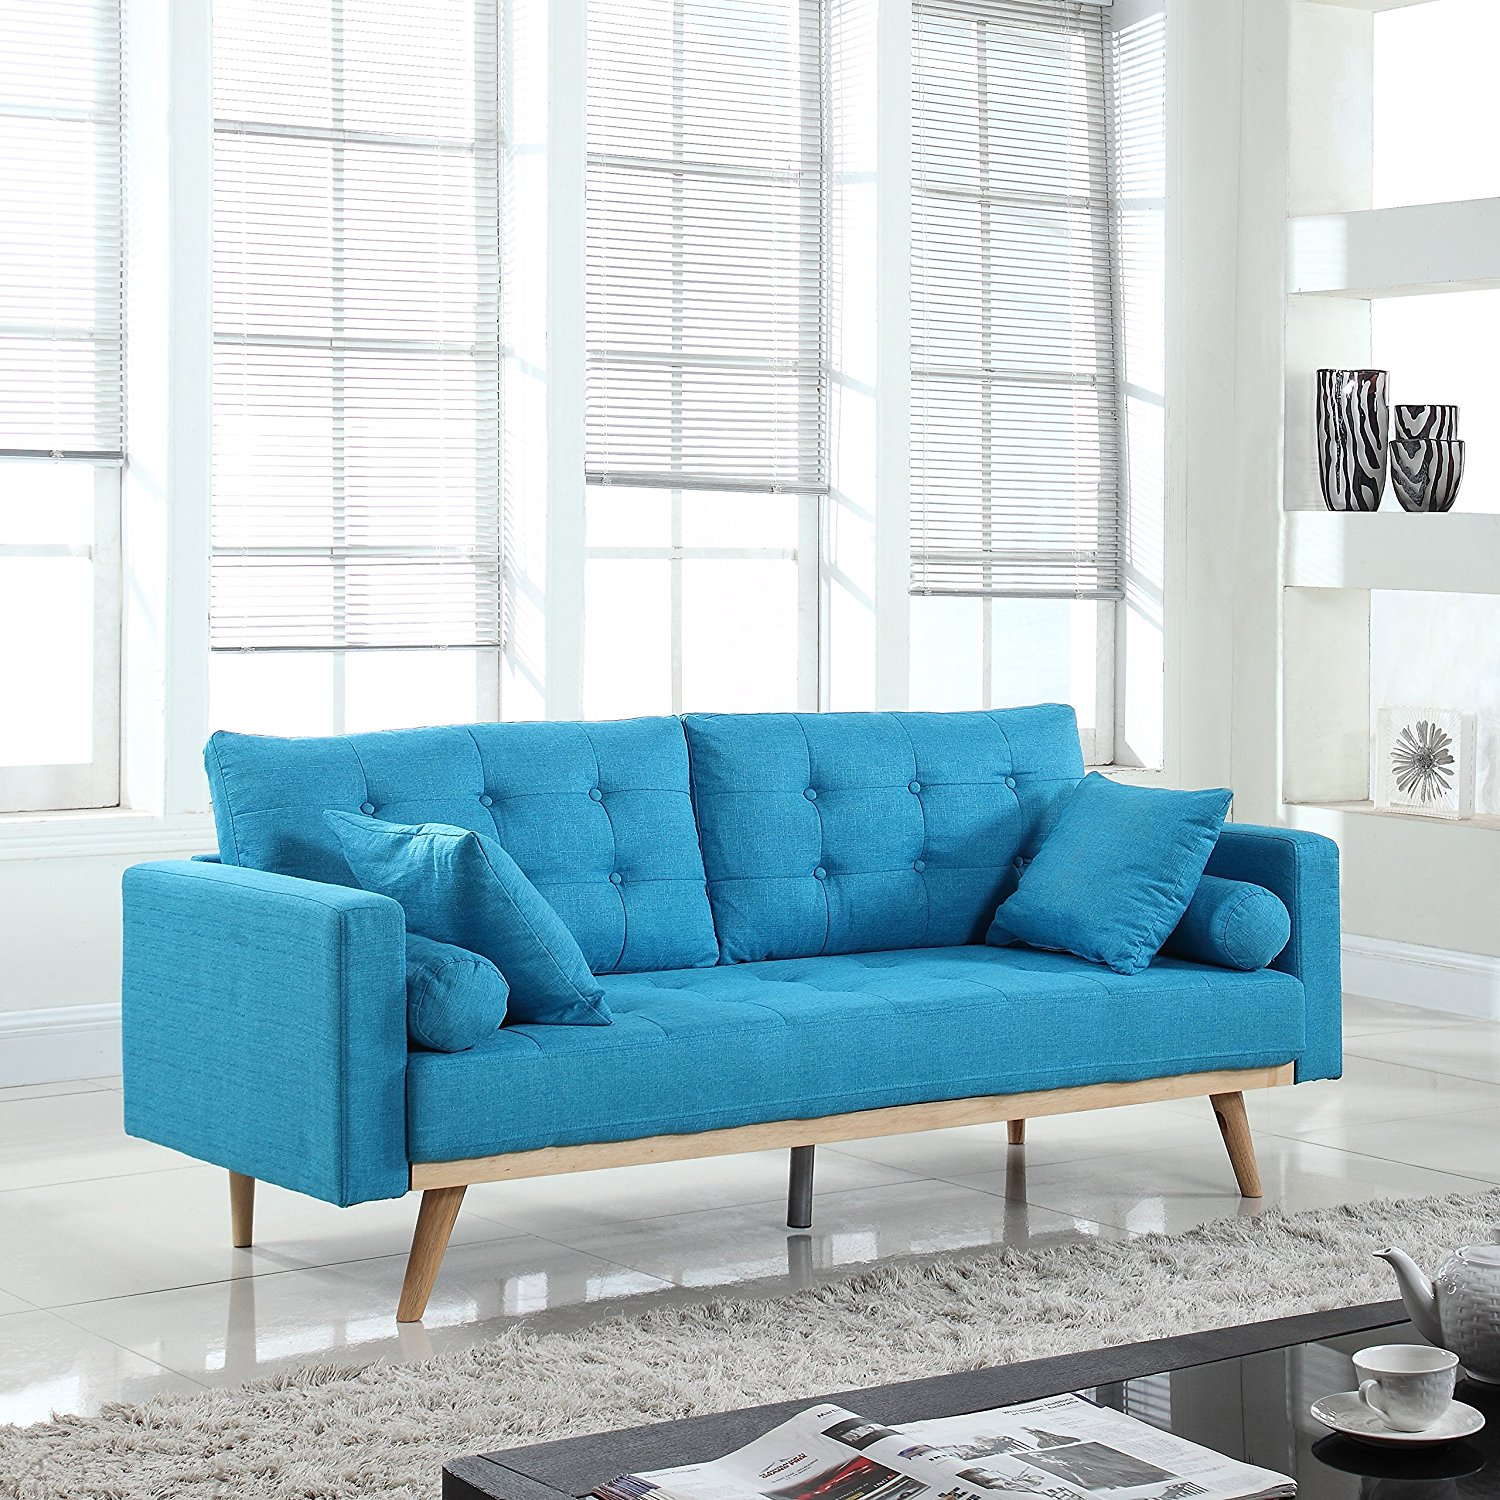 modern tufted linen fabric sofa light blue rochester overstock. Black Bedroom Furniture Sets. Home Design Ideas